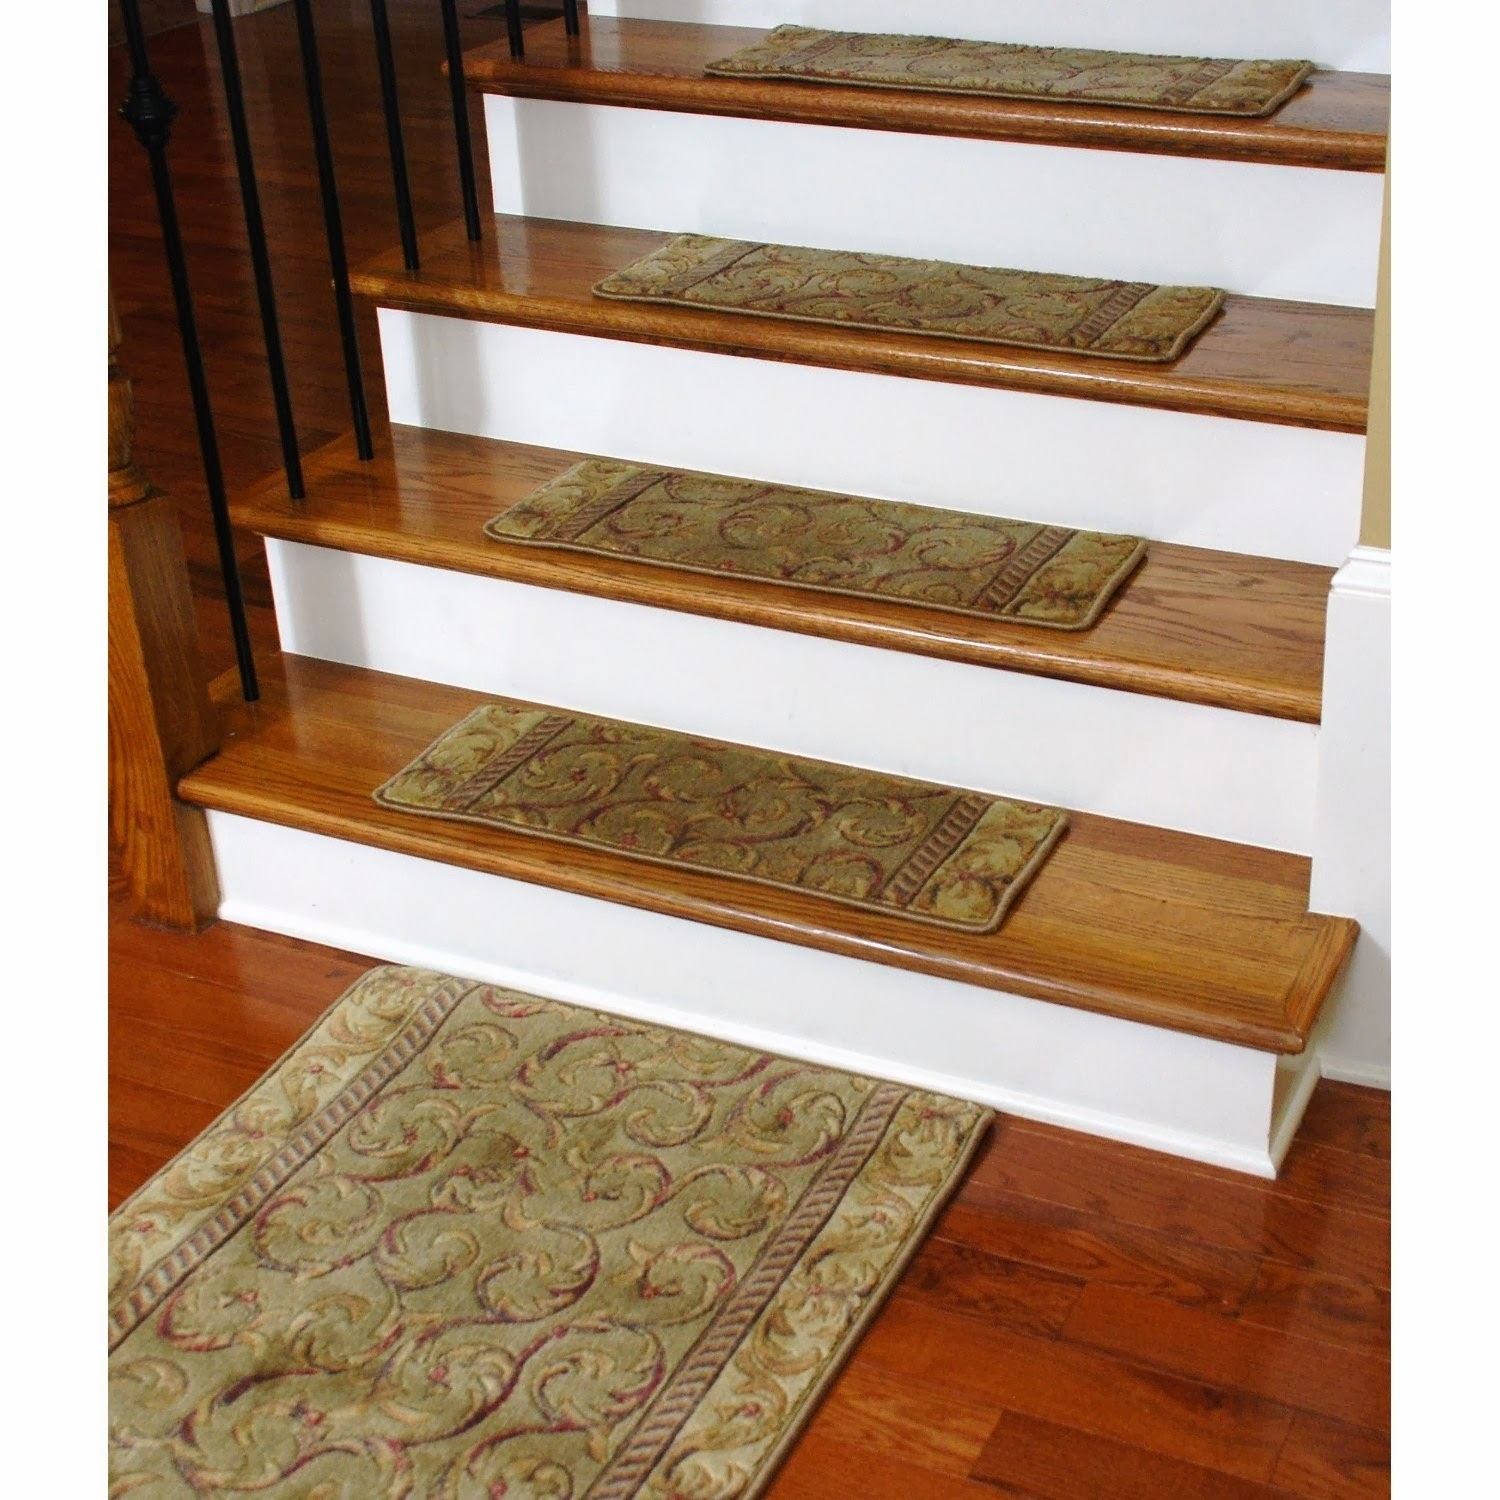 Advantages Of Using Carpet Stair Treads Playtriton With Regard To Wool Stair Rug Treads (Image 1 of 15)